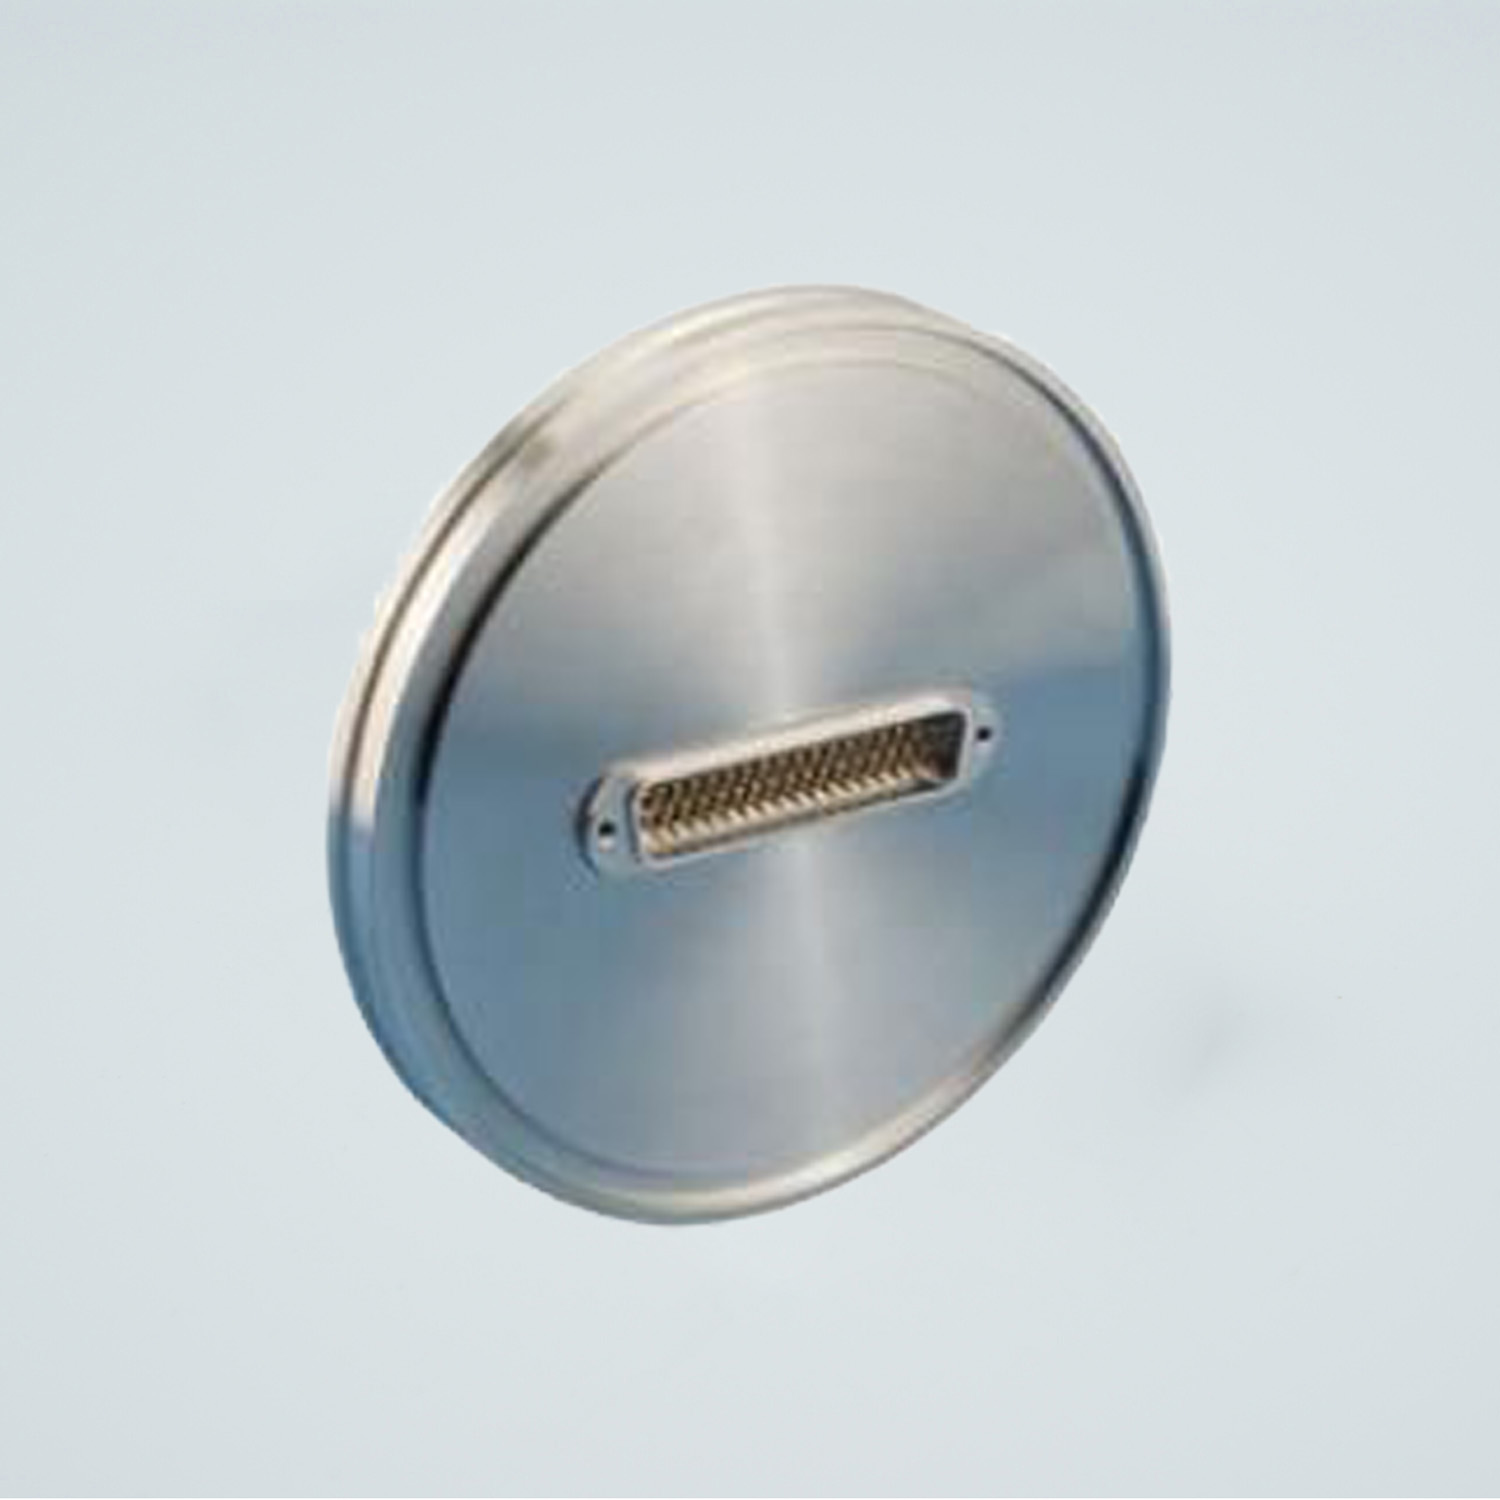 D-type subminiature feedthrough one-50-pin on DN100ISO flange